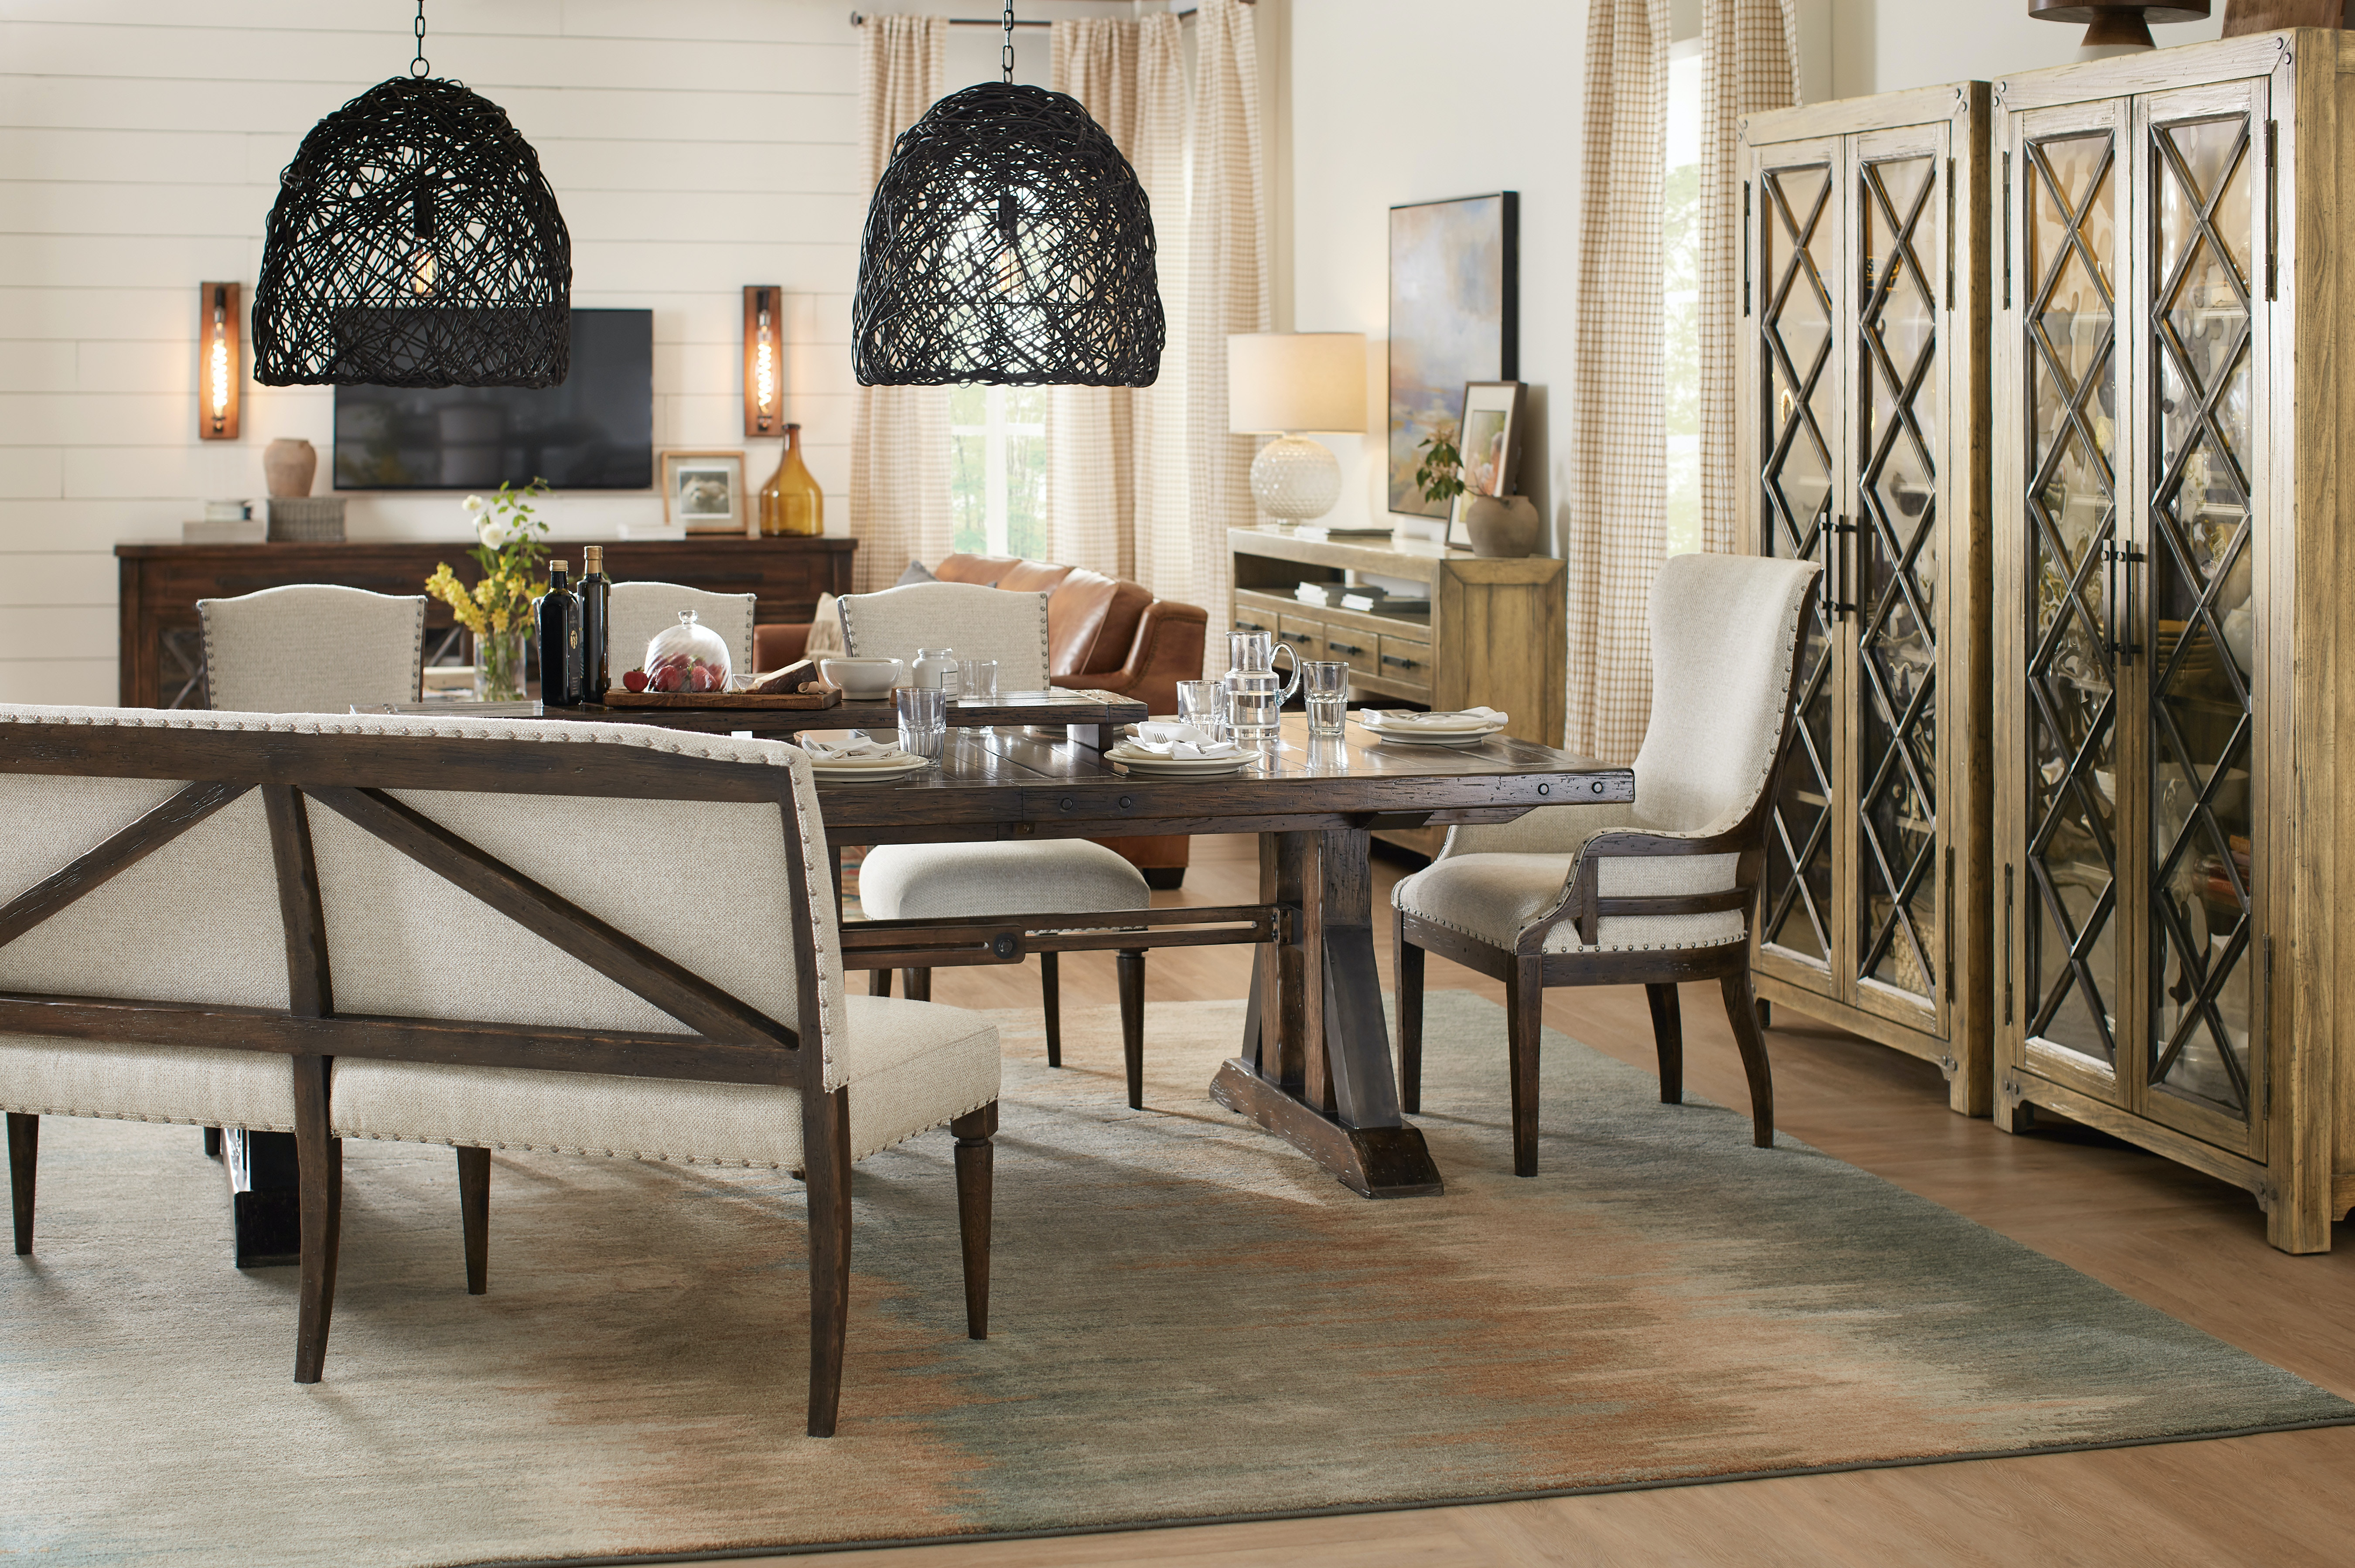 Roslyn County 5 Piece Dining Room Set: Includes Rectangle Table U0026 4 Side  Chairs